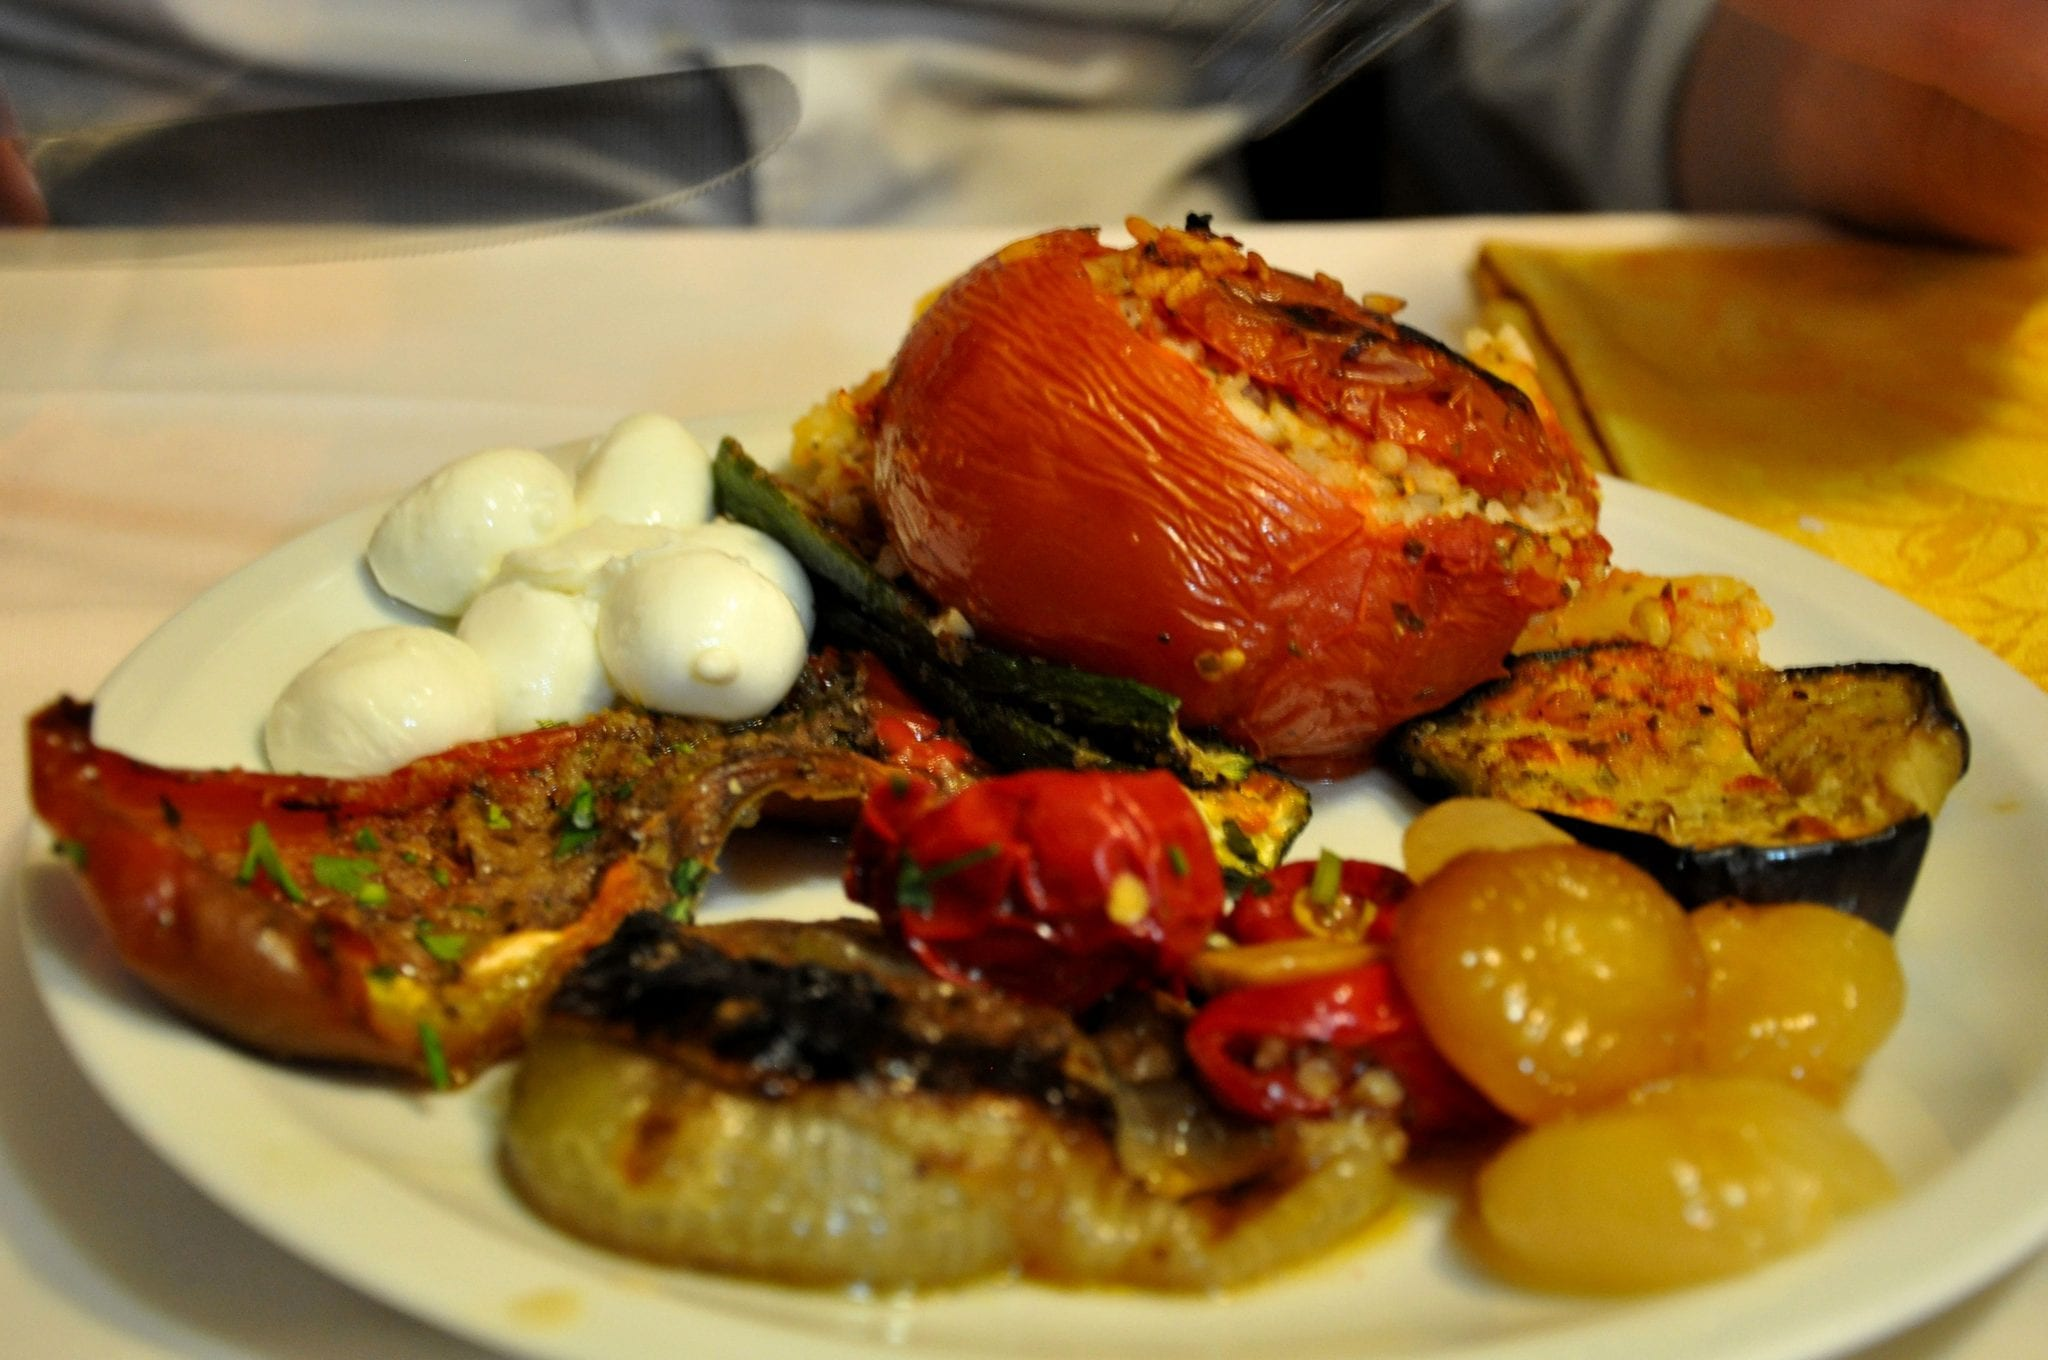 Go for the vegetable contorni or antipasti if you're on a restricted diet